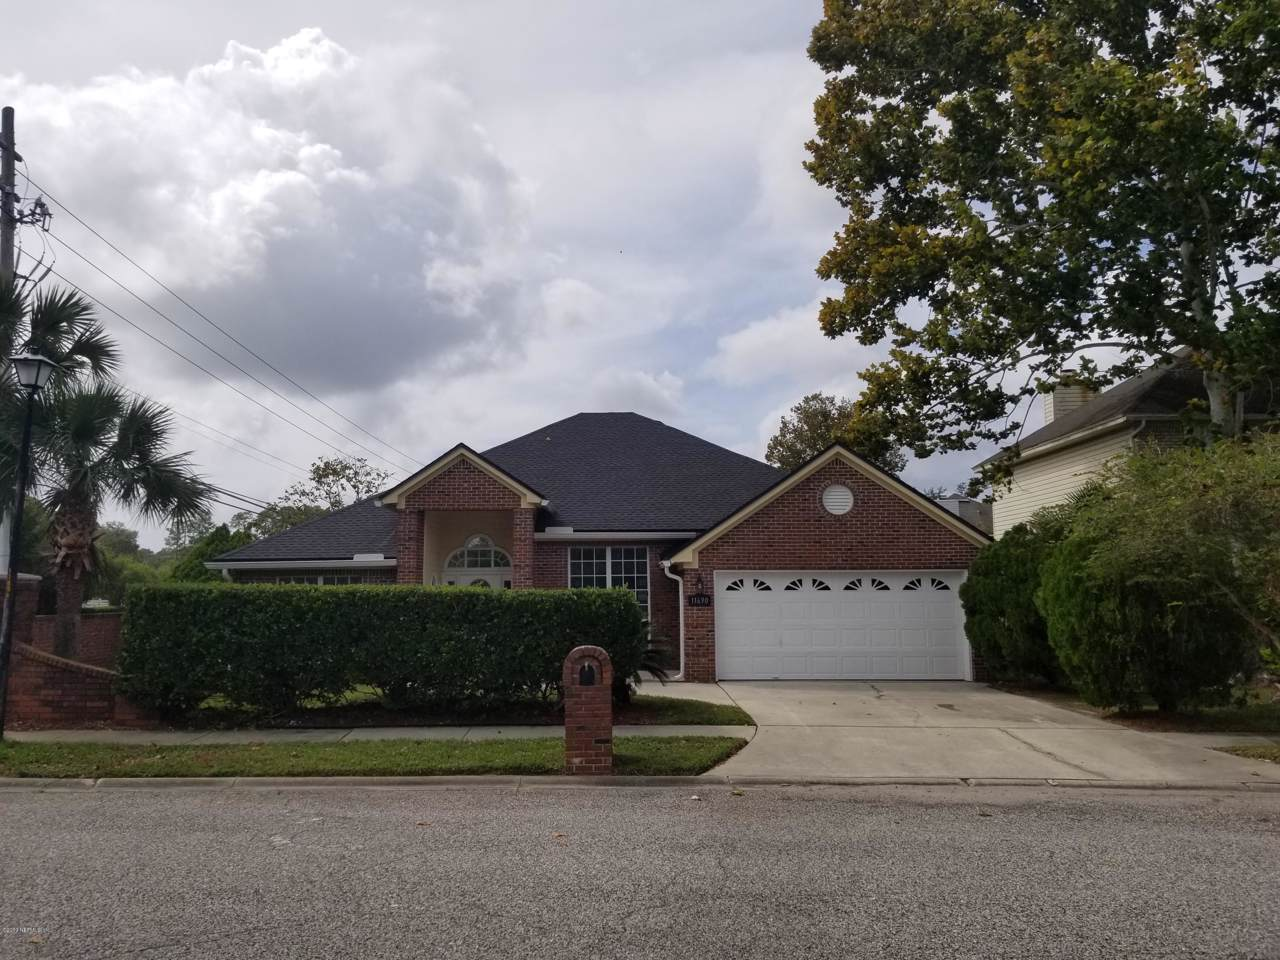 11690 Alexis Forest Dr - Photo 1